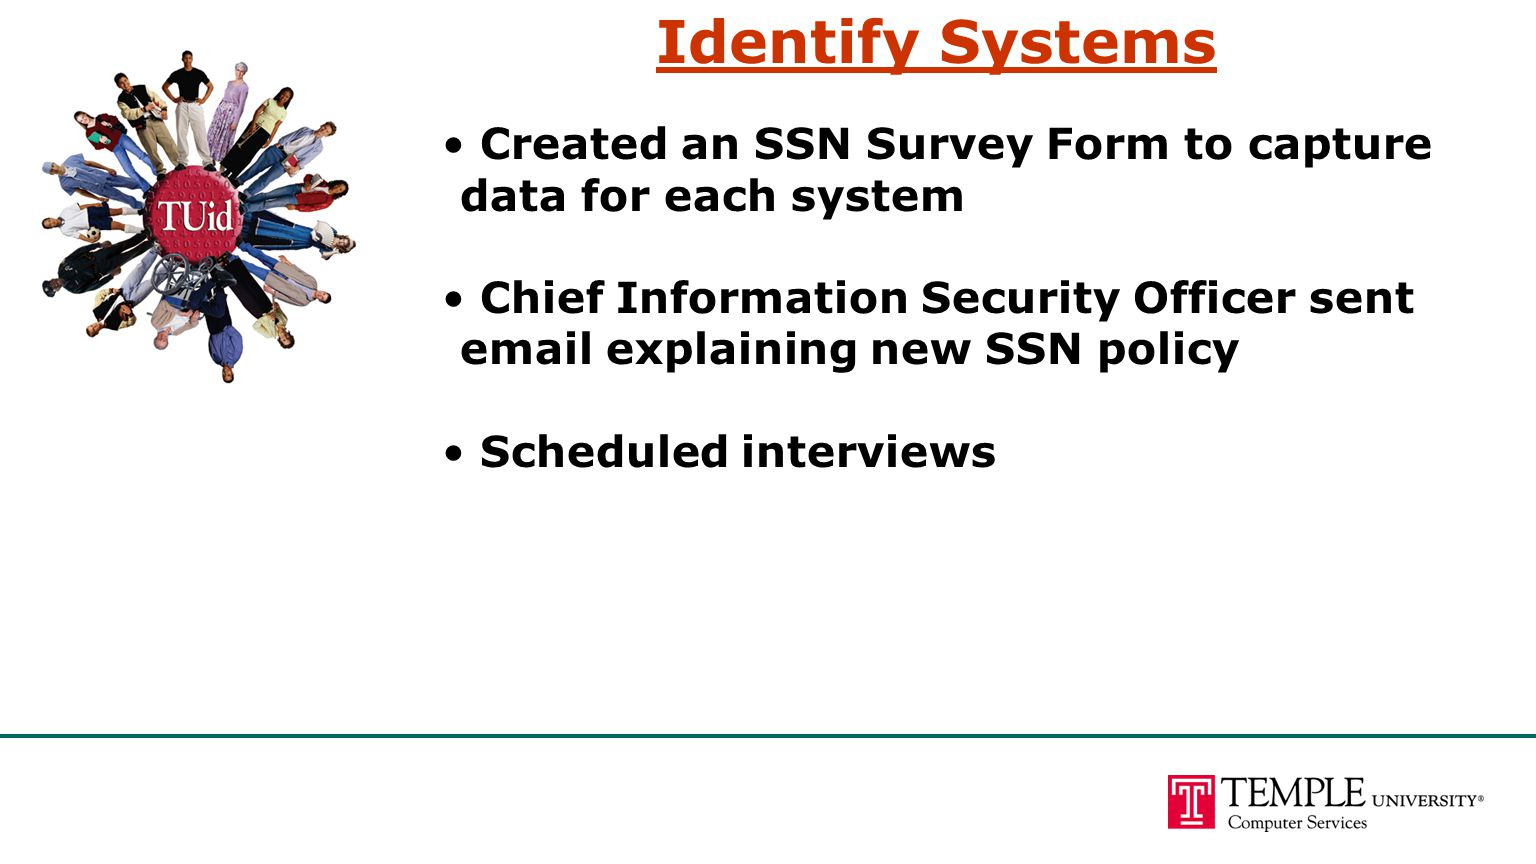 Identify Systems Created an SSN Survey Form to capture data for each system Chief Information Security Officer sent email explaining new SSN policy Scheduled interviews